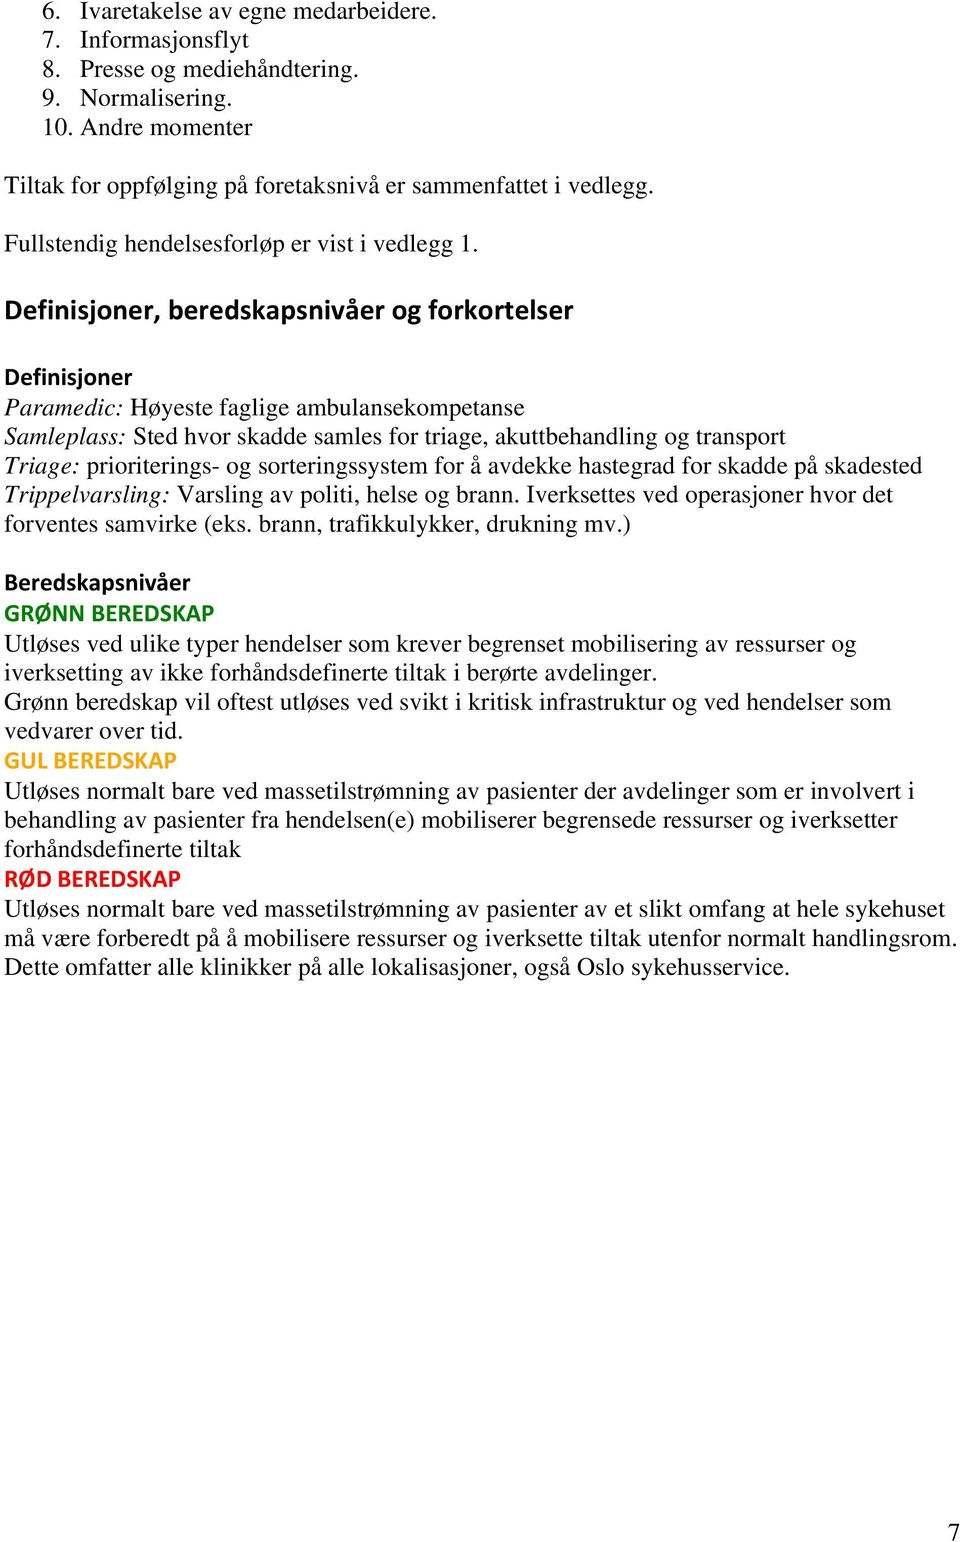 Definisjoner, beredskapsnivåer og forkortelser Definisjoner Paramedic: Høyeste faglige ambulansekompetanse Samleplass: Sted hvor skadde samles for triage, akuttbehandling og transport Triage: